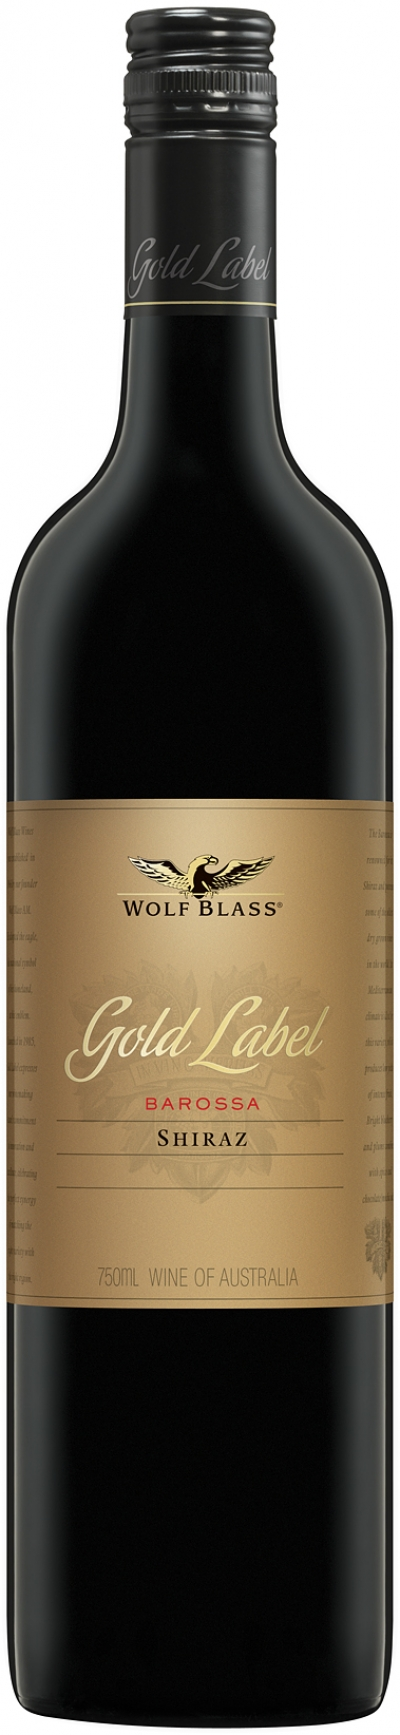 Wolf Blass Gold Label Shiraz